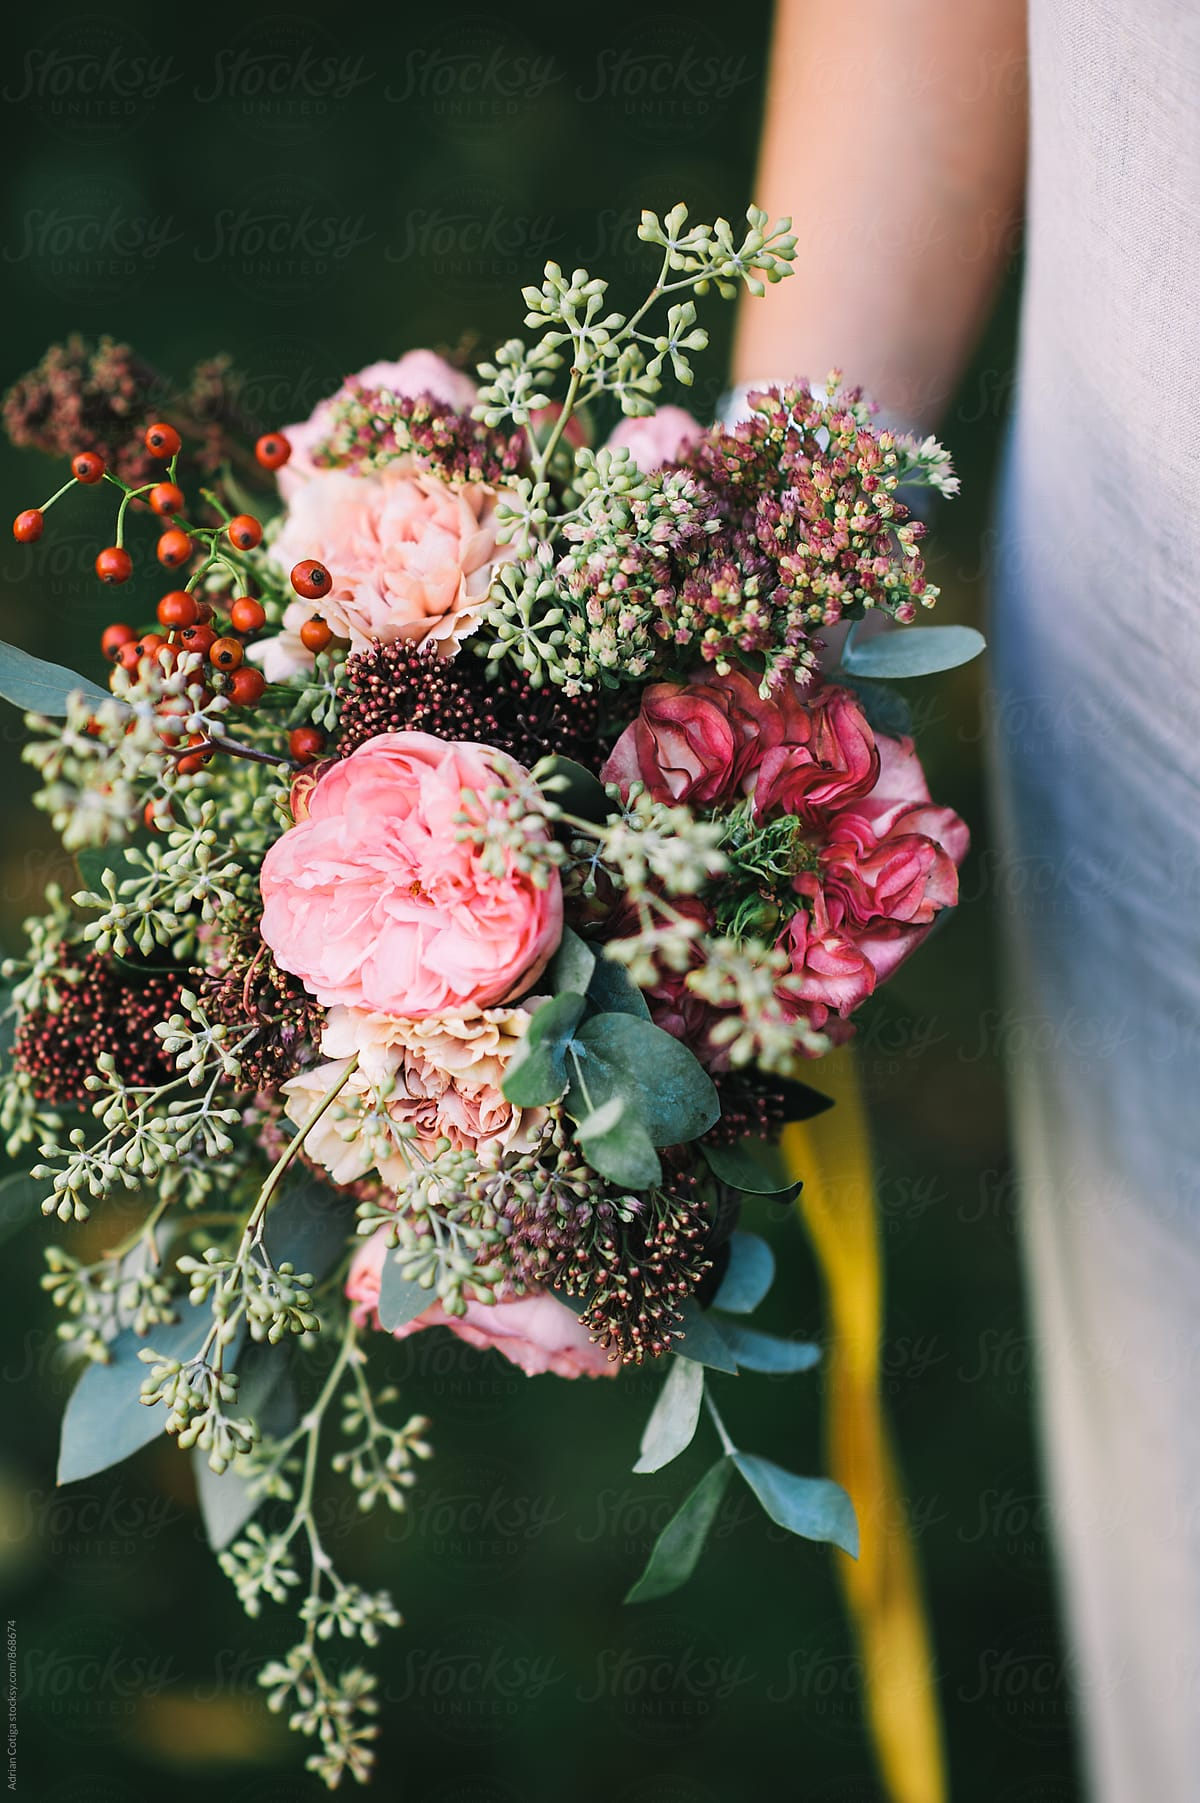 Woman Holding A Lovely Bouquet Of Pink Peonies And Eucalyptus By Adrian Cotiga Stocksy United